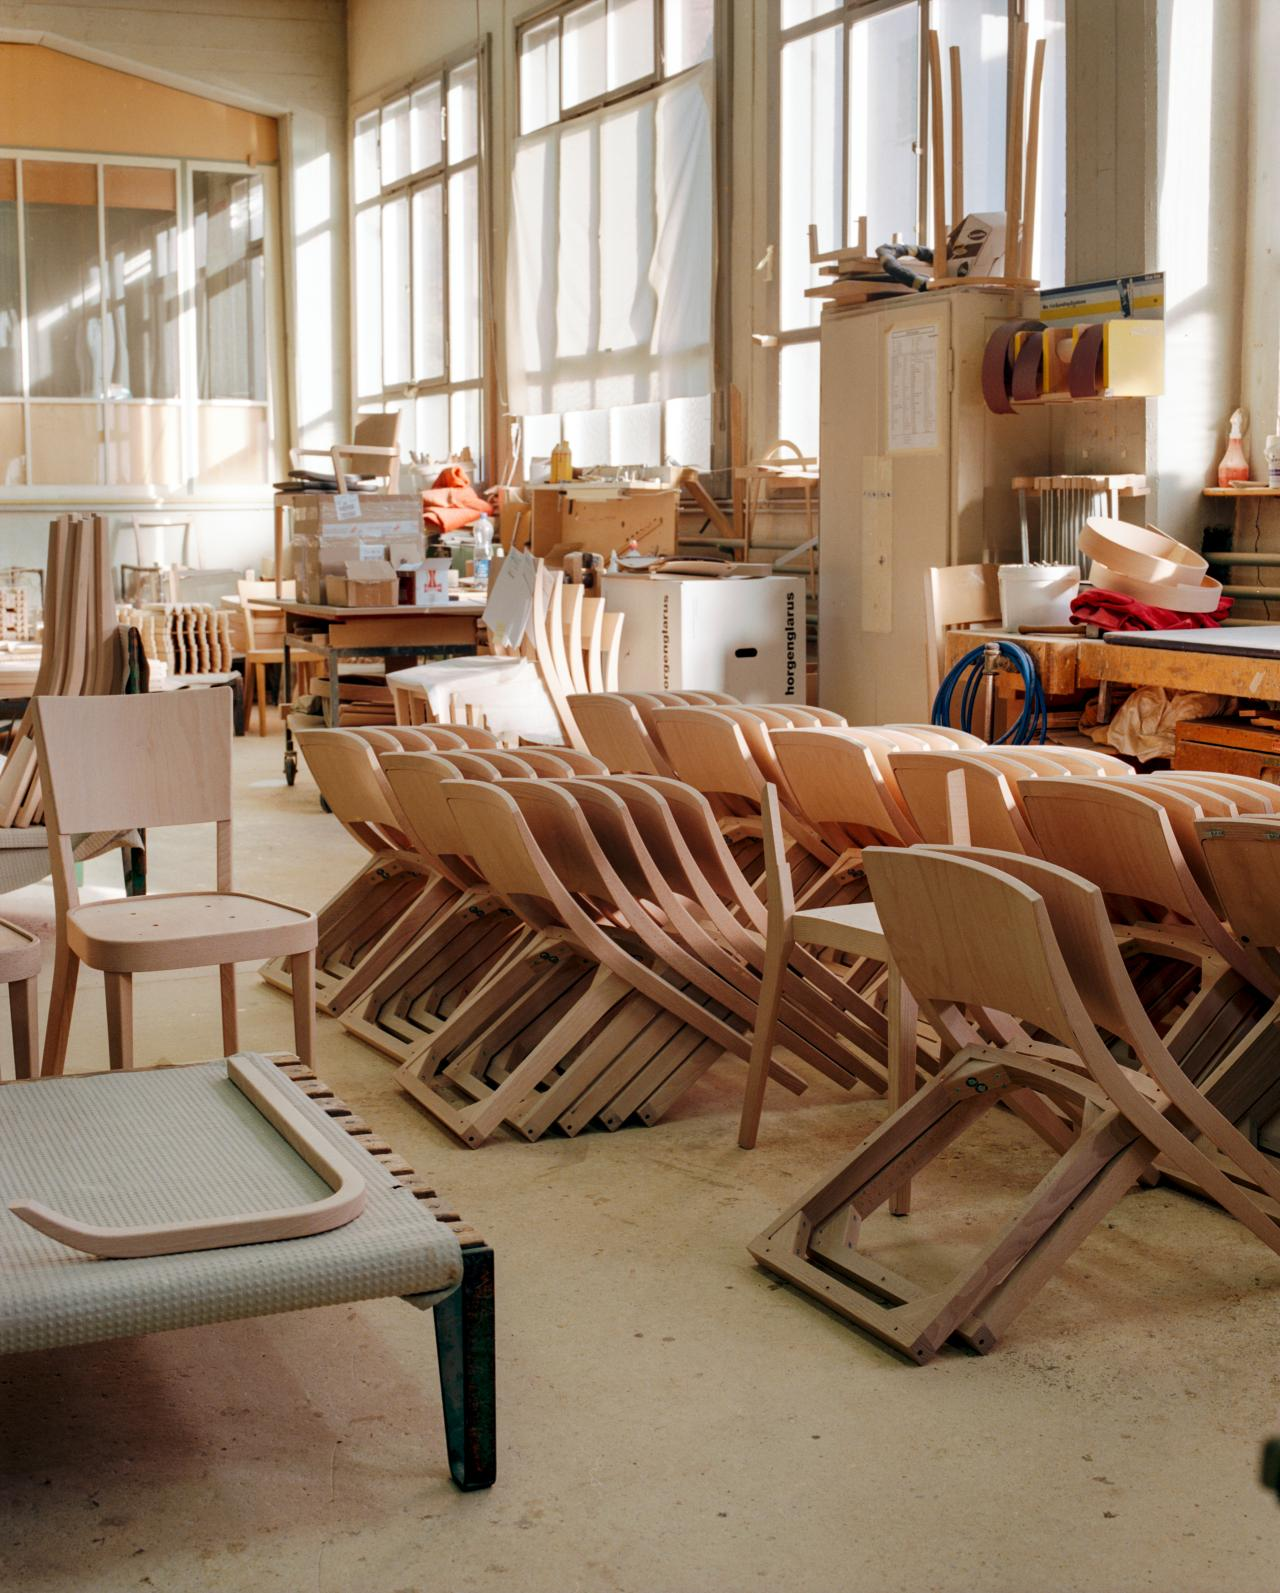 chairs in workshop